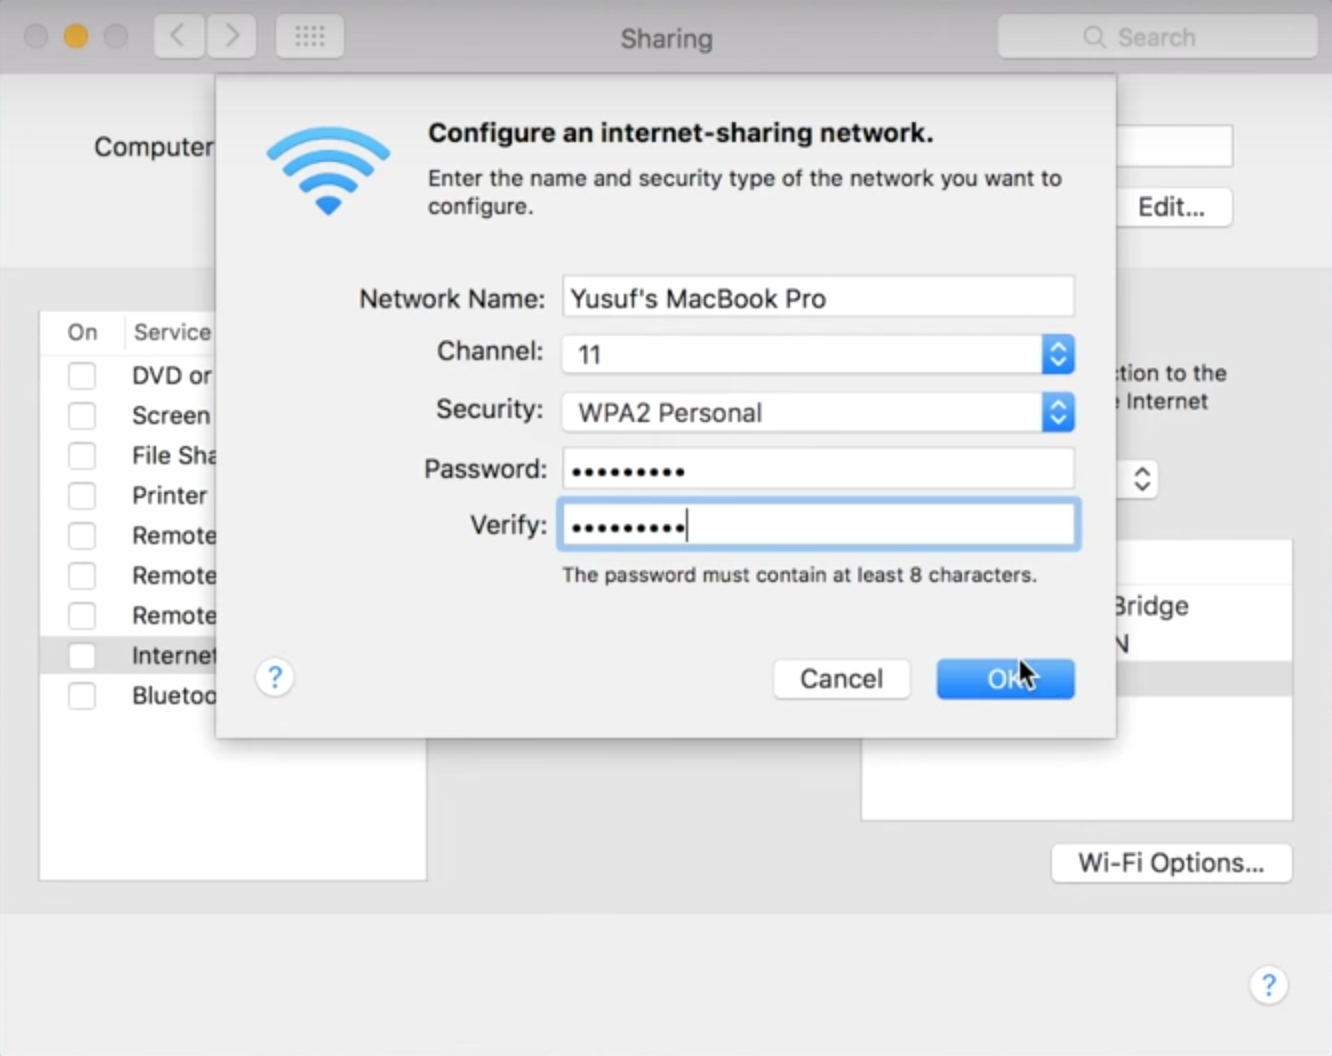 How to turn an iPhone into a Wi-Fi hotspot